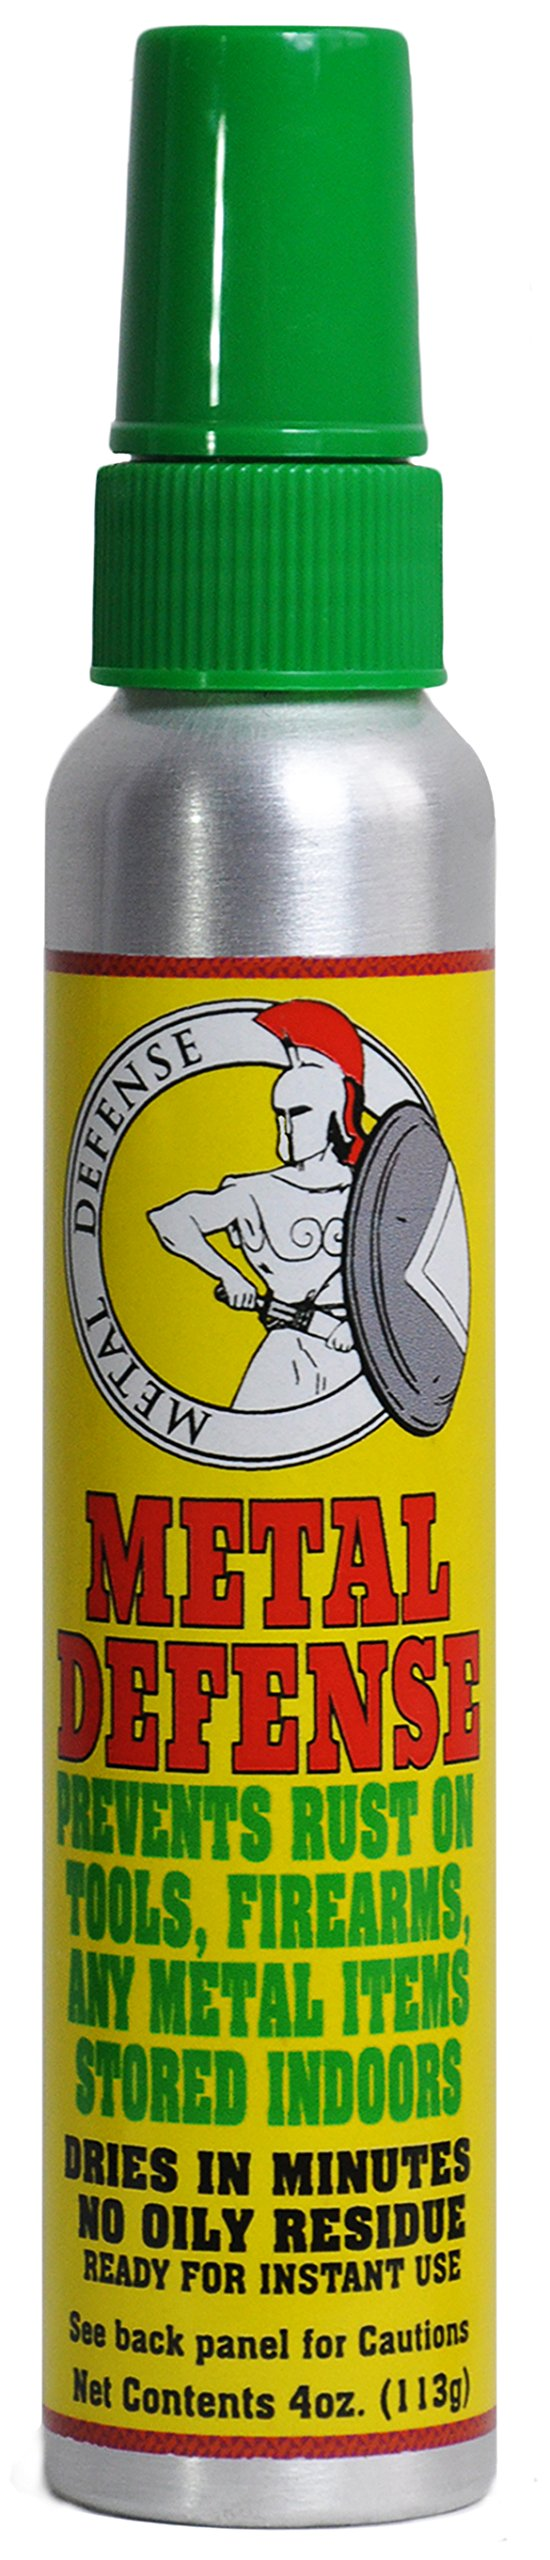 Metal Defense | Prevents Rust on Tools, Firearms, Any Metal Items Stored Indoors | Quick Drying Formula (Single 4 oz. Can)